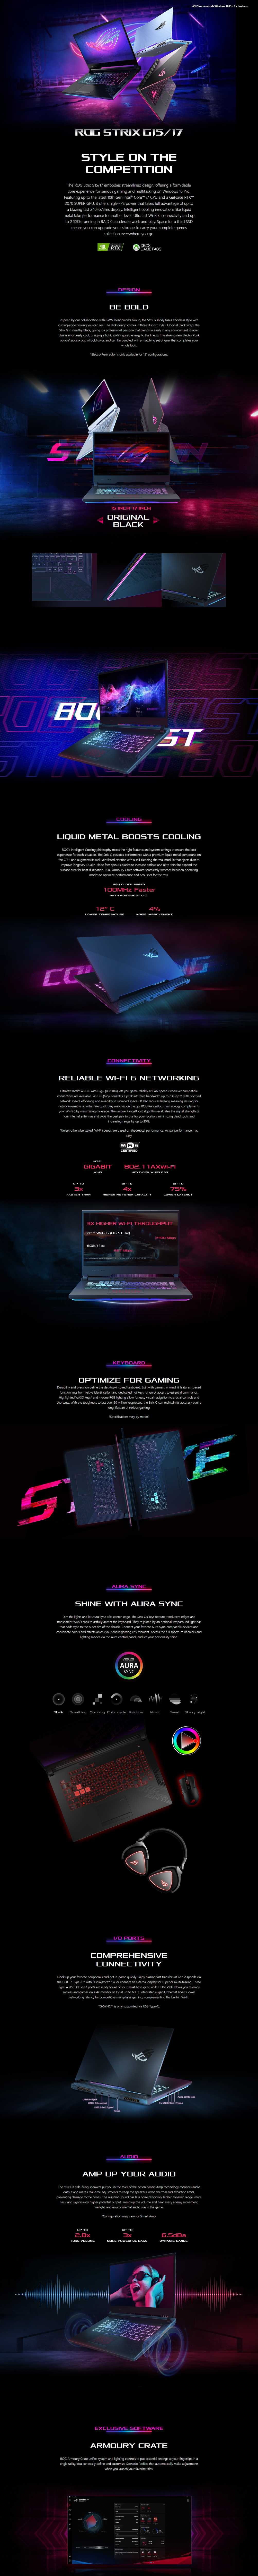 """A large marketing image providing additional information about the product ASUS ROG Strix G512LU 15.6"""" i7 Gen10 GTX 1660 Ti Windows 10 Gaming Notebook - Additional alt info not provided"""